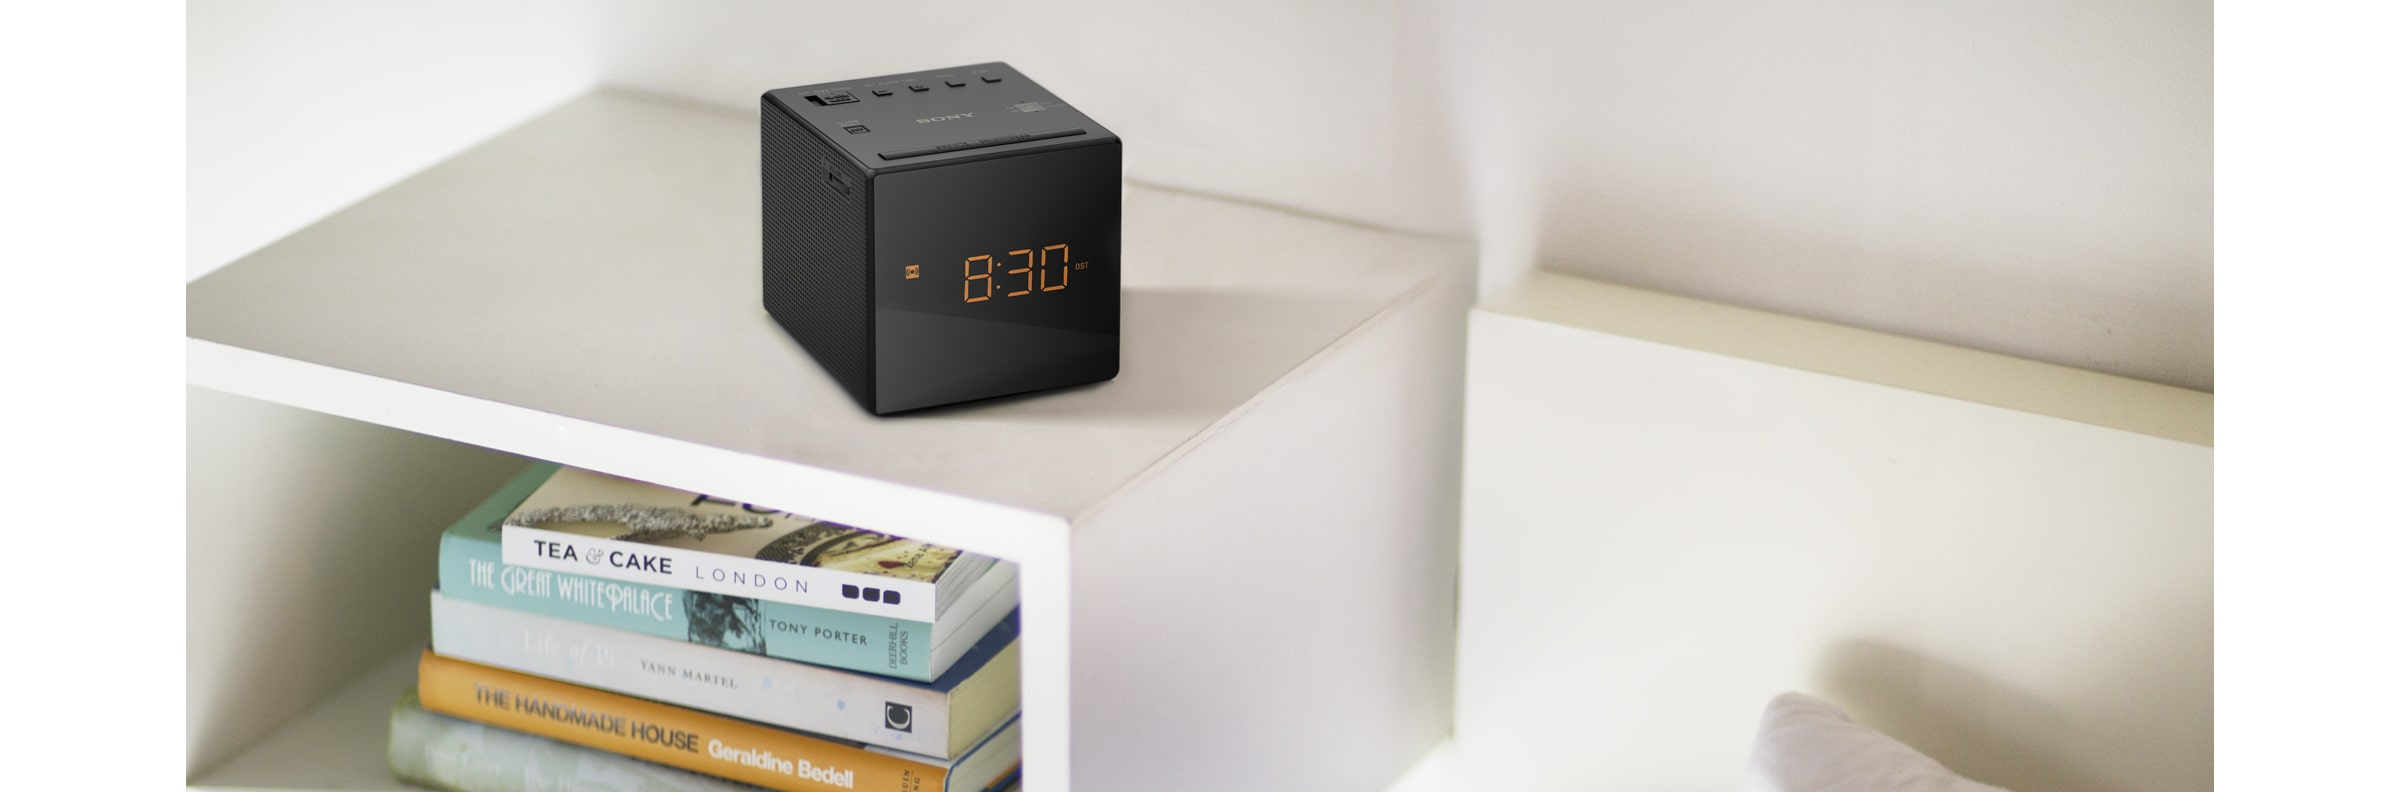 Clock Radio in action